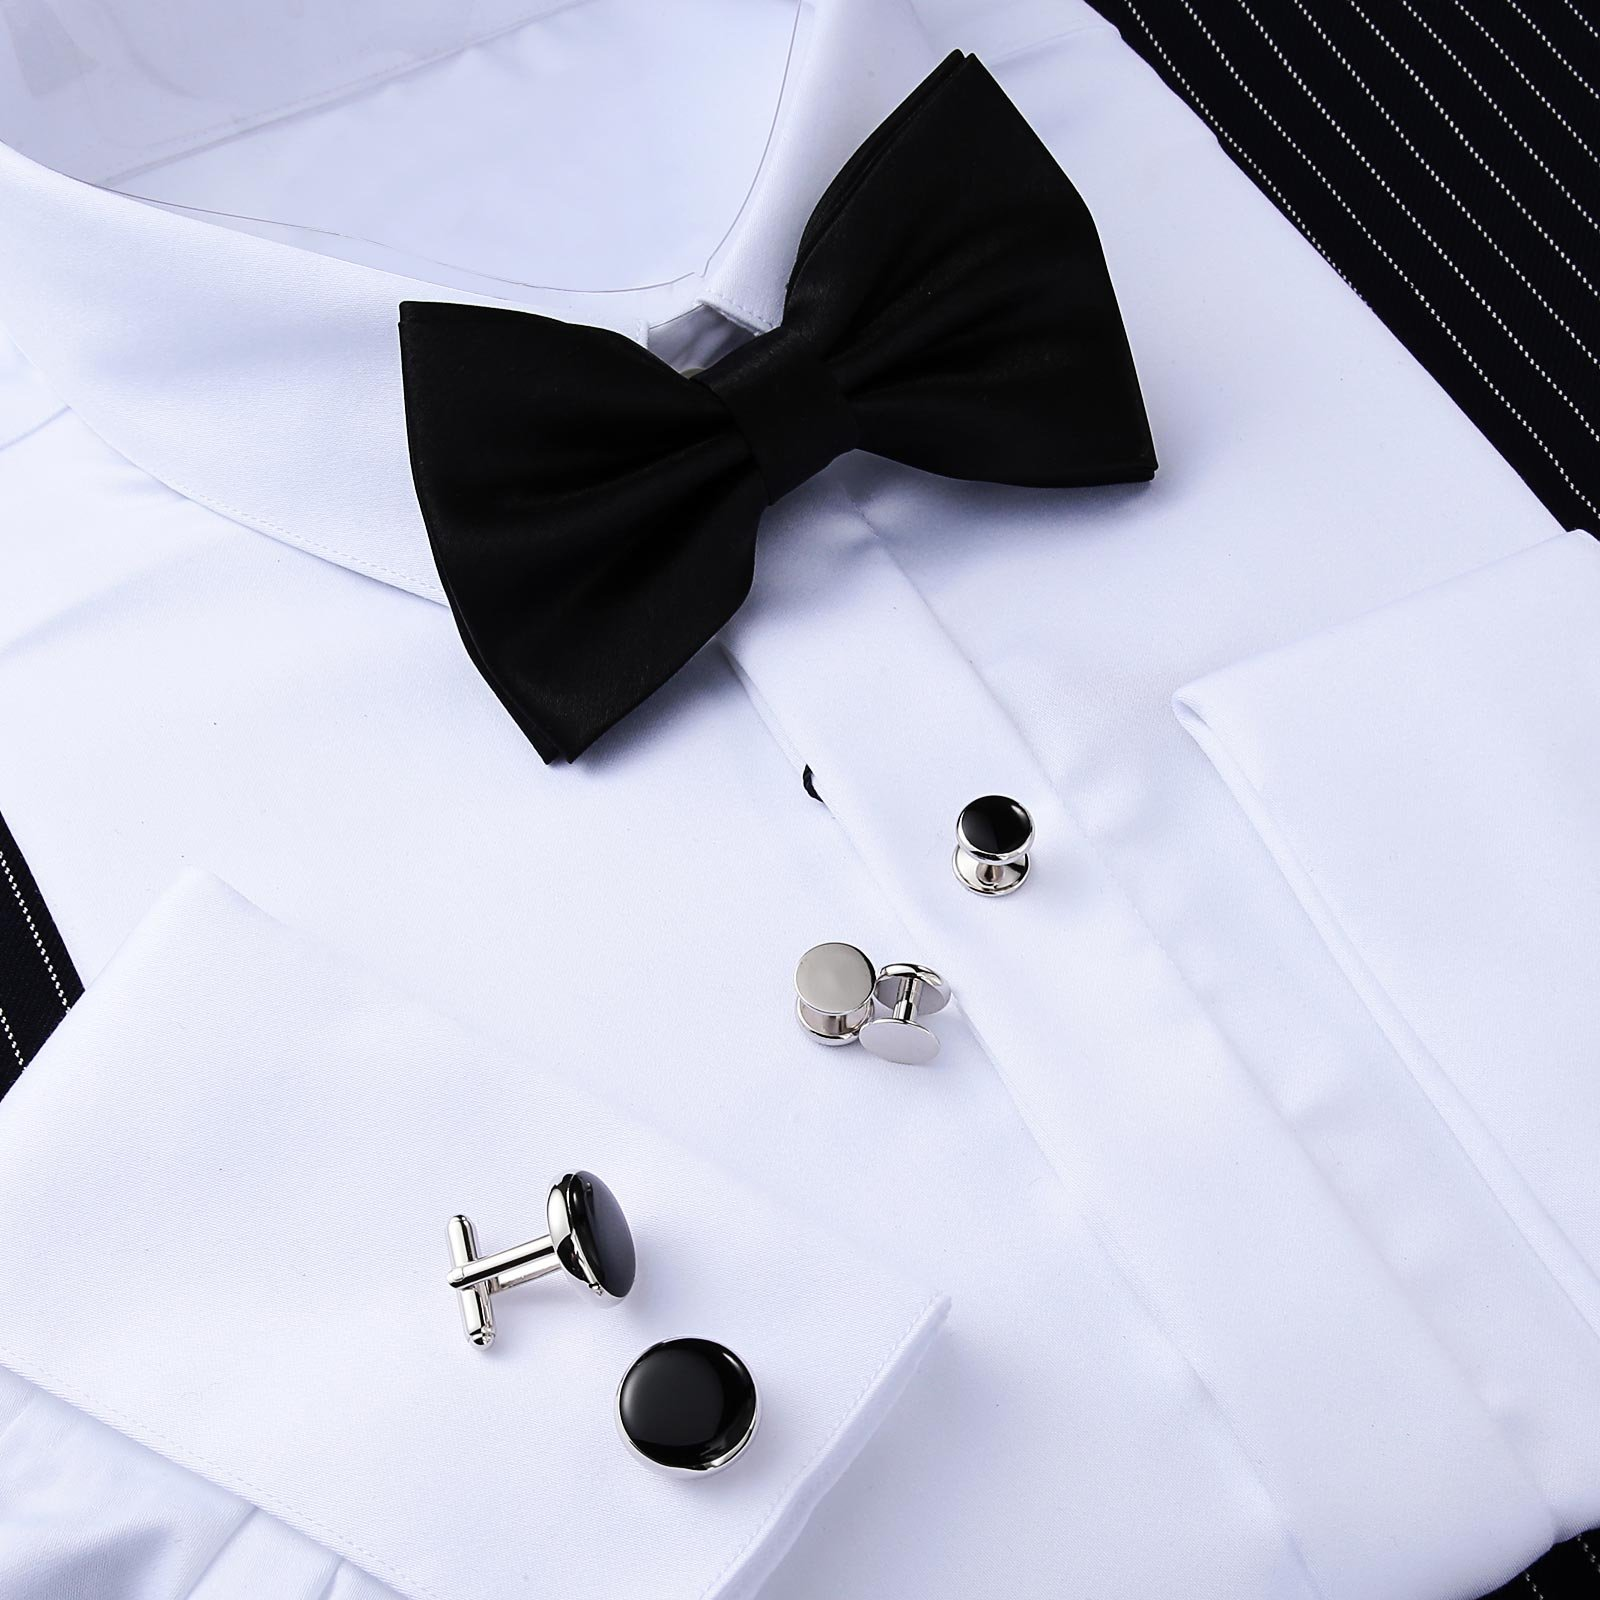 Aienid Mens Cufflinks and Studs for Men, Father of The Bride Cufflinks Set Tuxedo Shirts Bowtie Black by Aienid (Image #5)